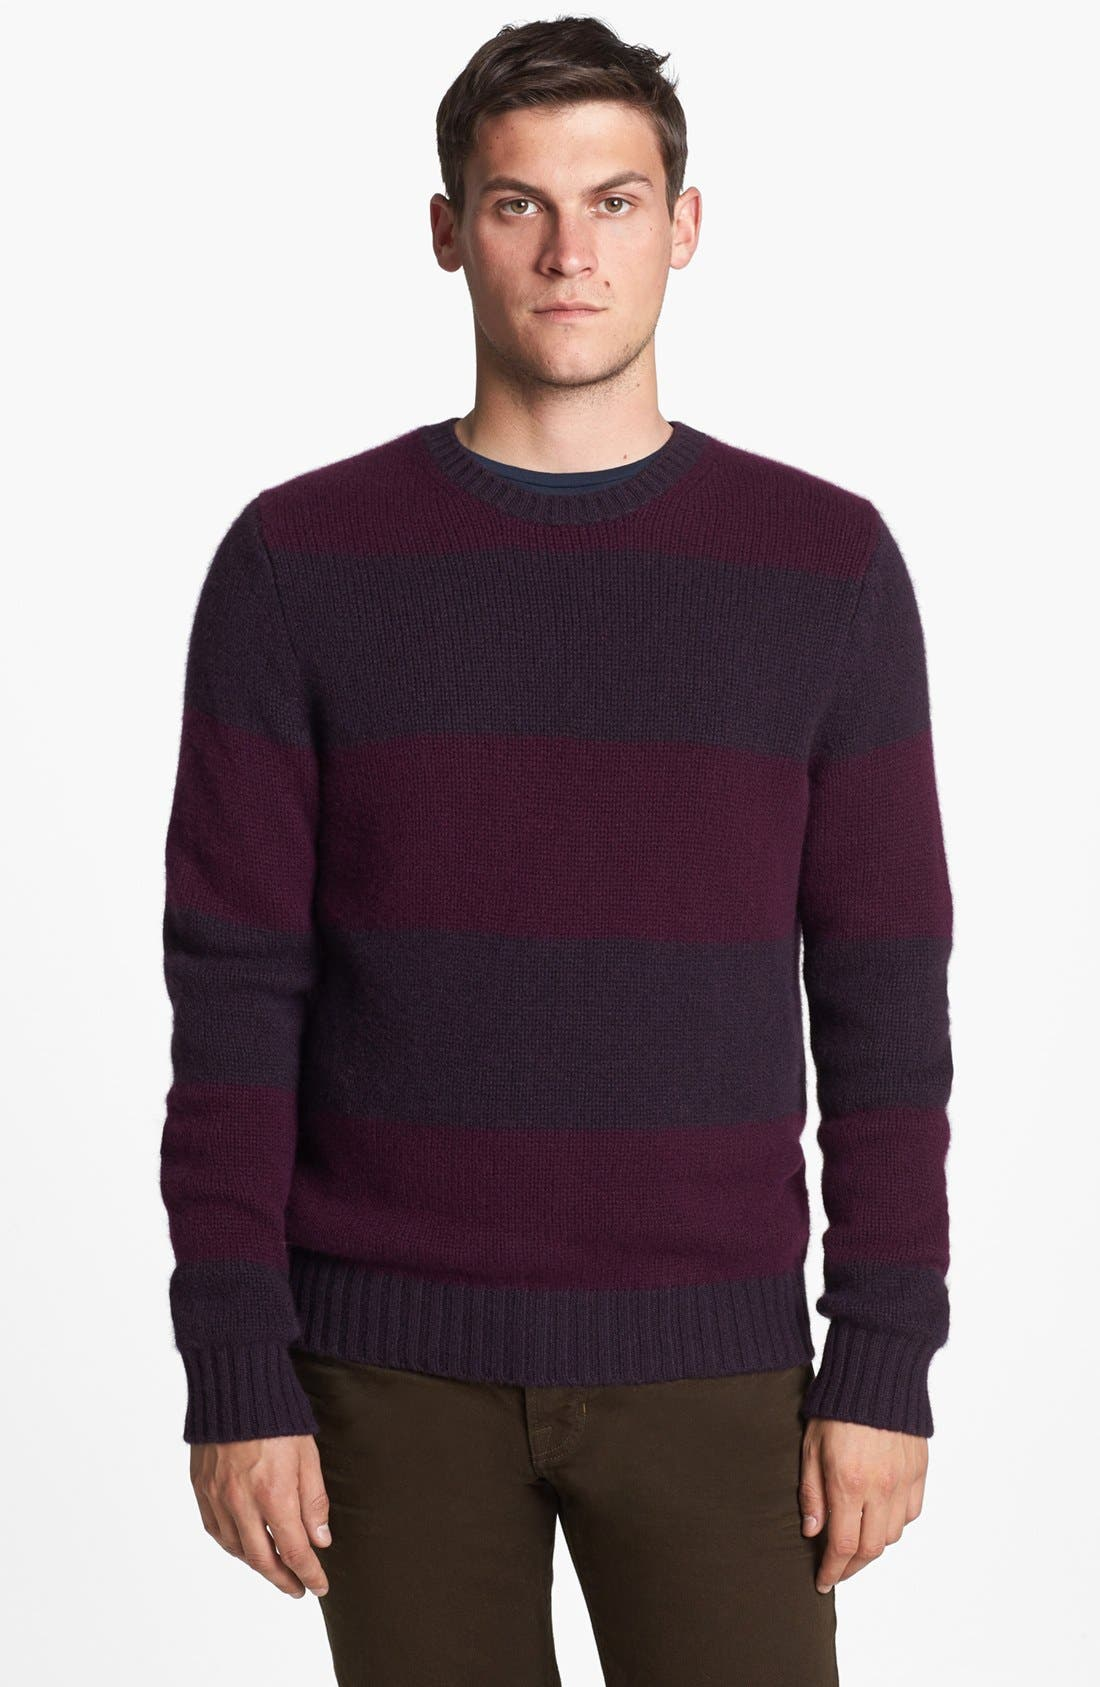 Alternate Image 1 Selected - Vince 'Rugby' Cashmere Crewneck Sweater